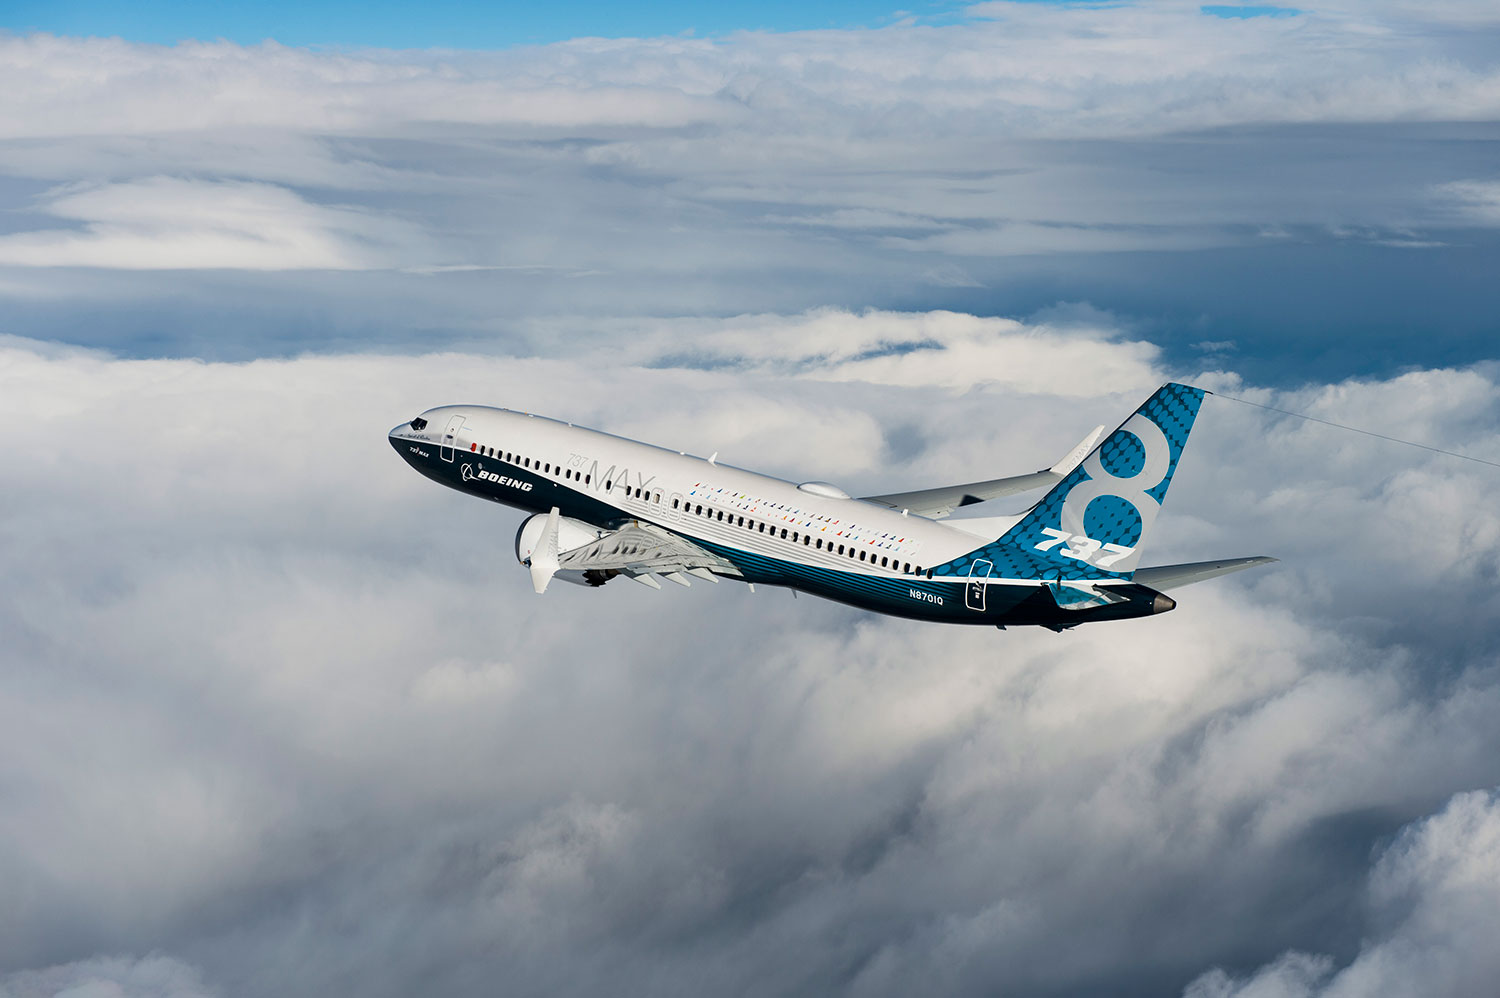 Boeing 737 Max First Flight In Pictures Airport Spotting